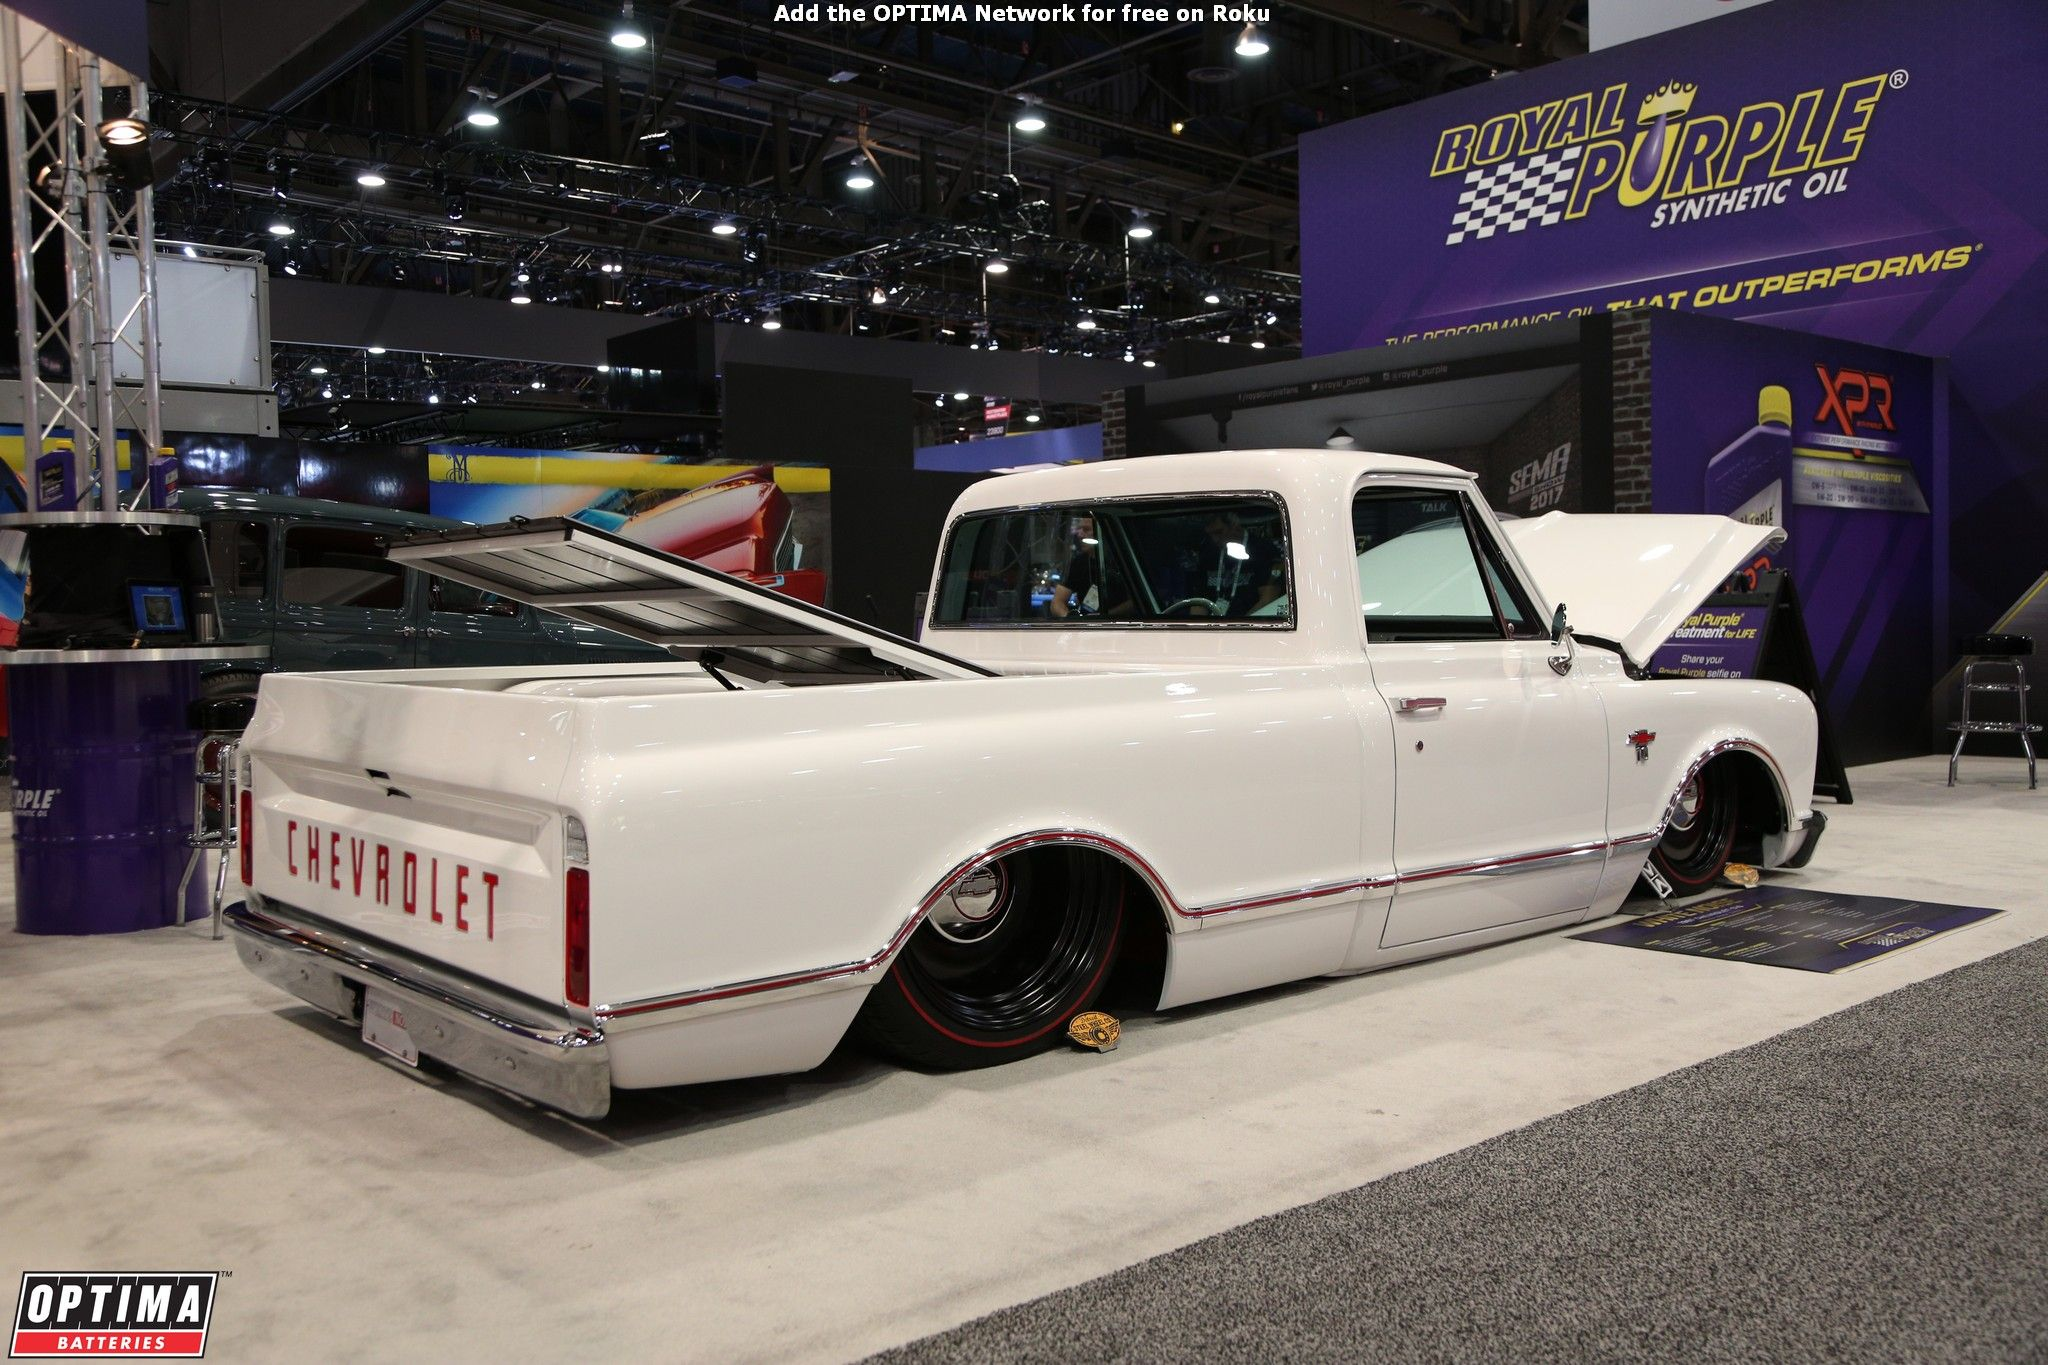 Lowered Chevrolet Pickup Truck At The 2017 Sema Show In Las Vegas